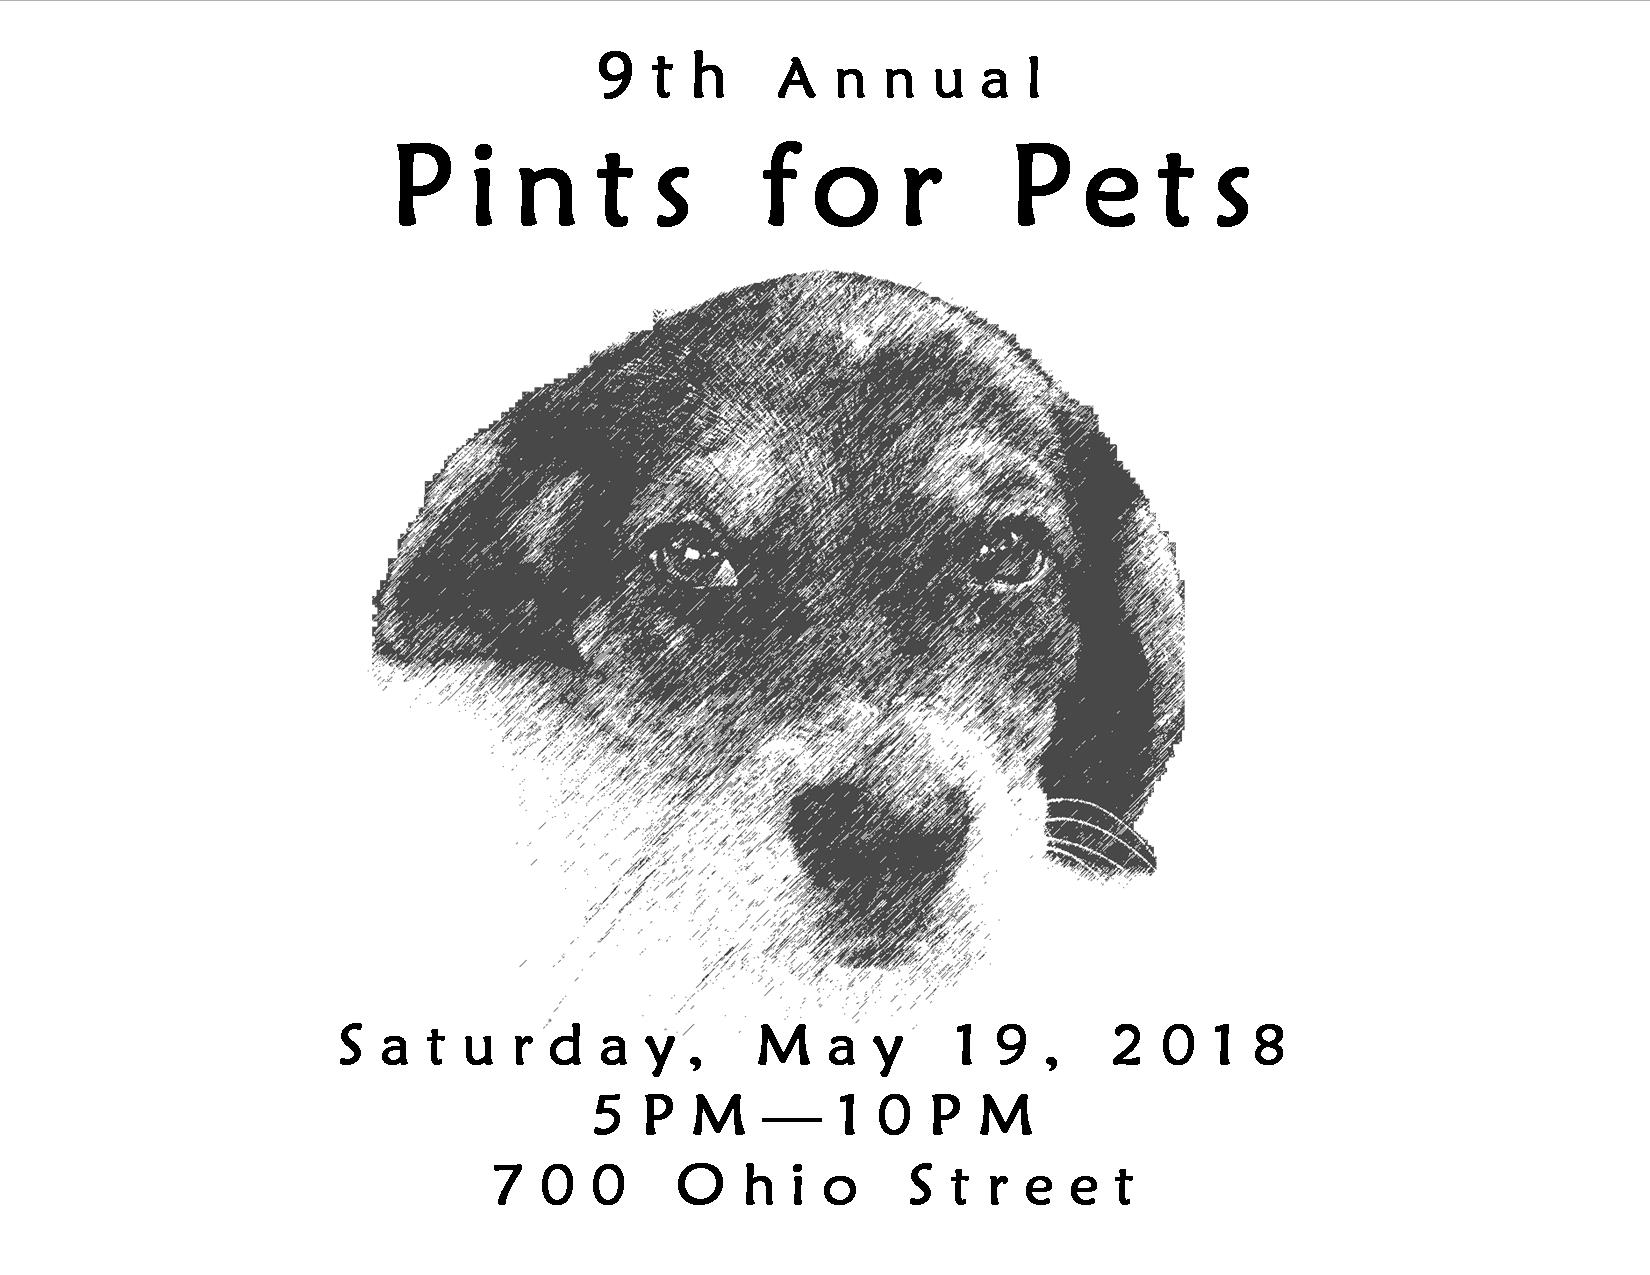 Pints for Pets 2018 - May 19, 2018